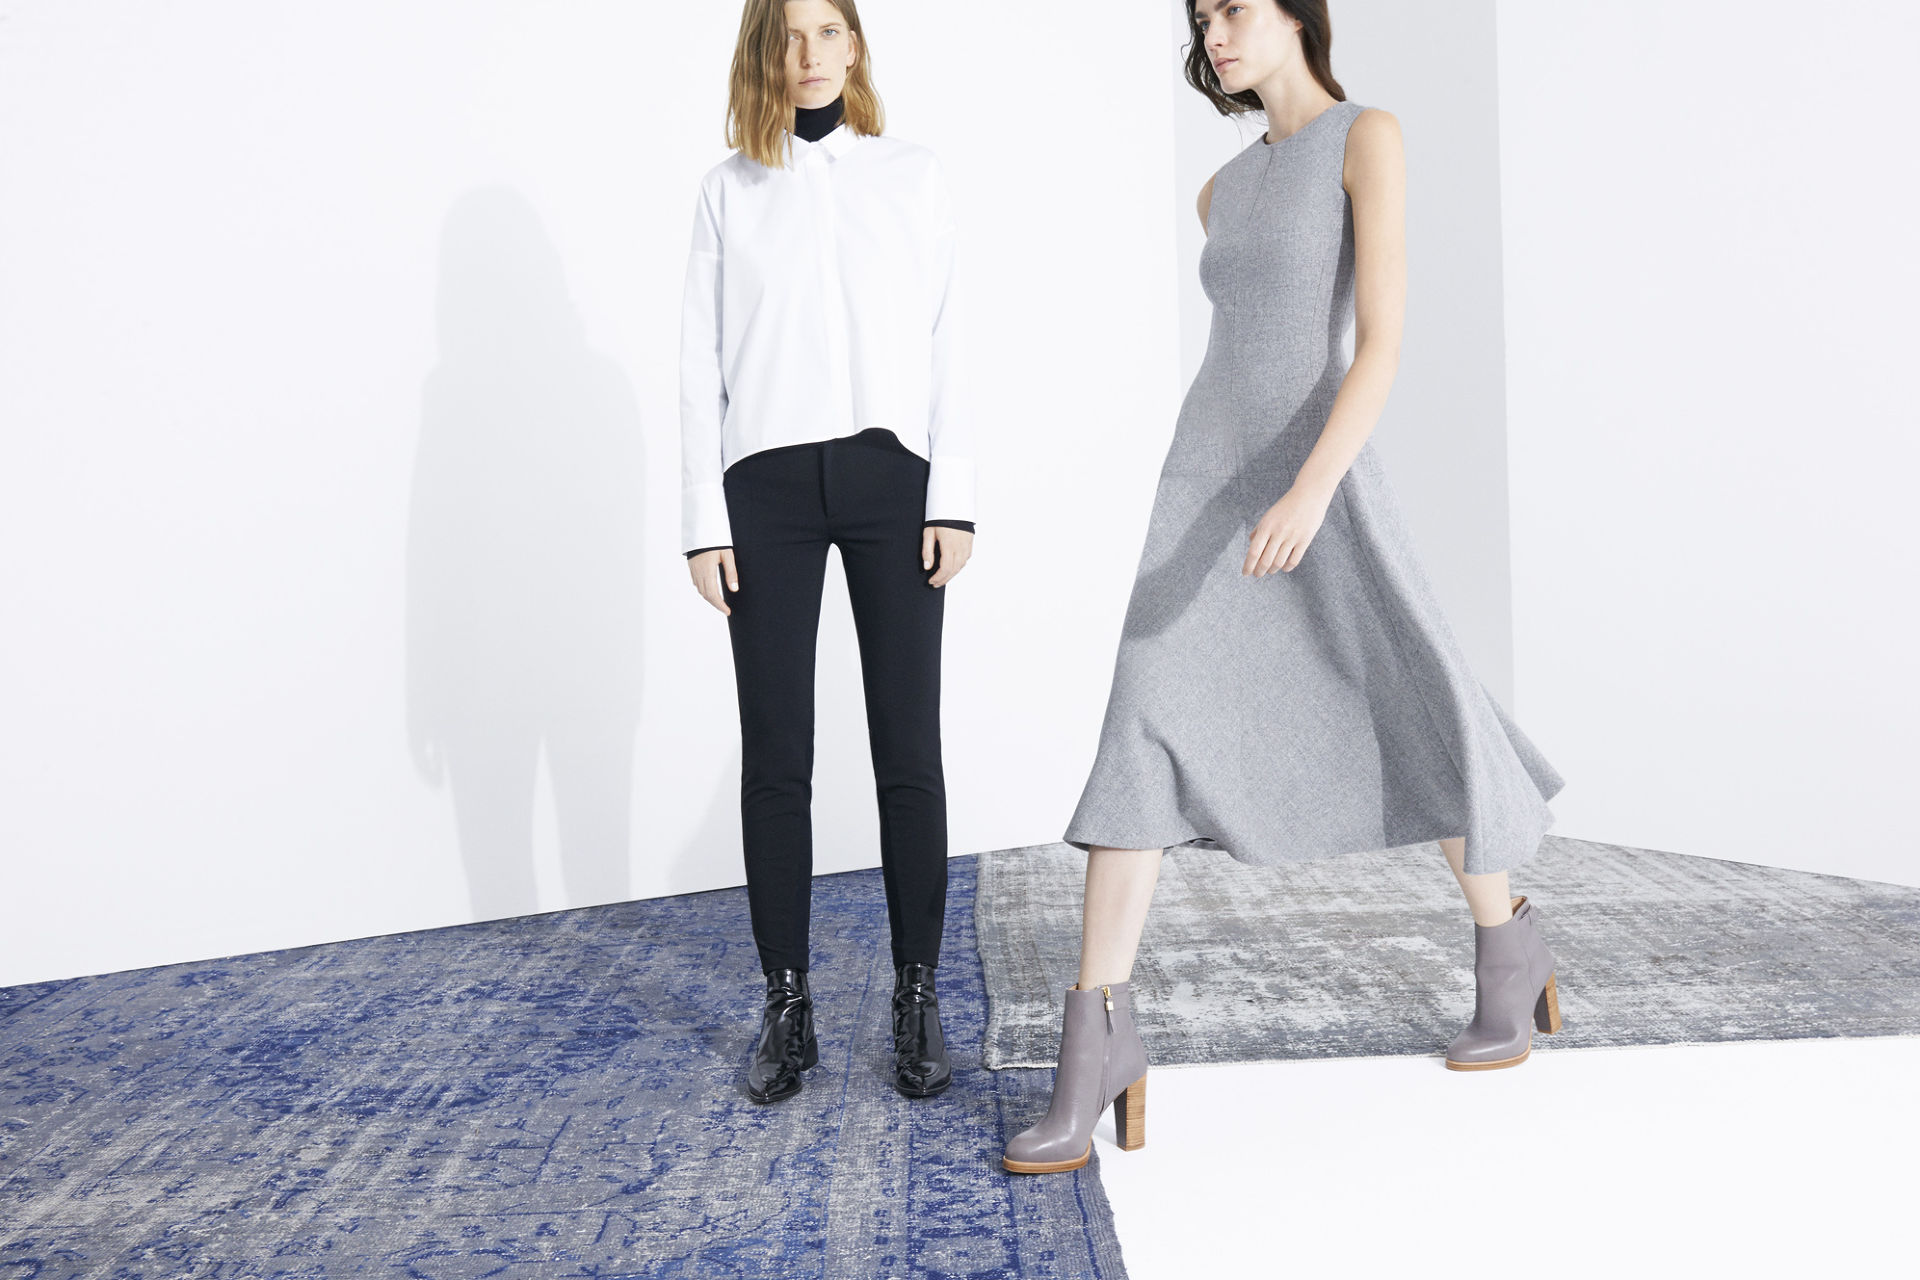 Zara Fall 2013 Lookbooks